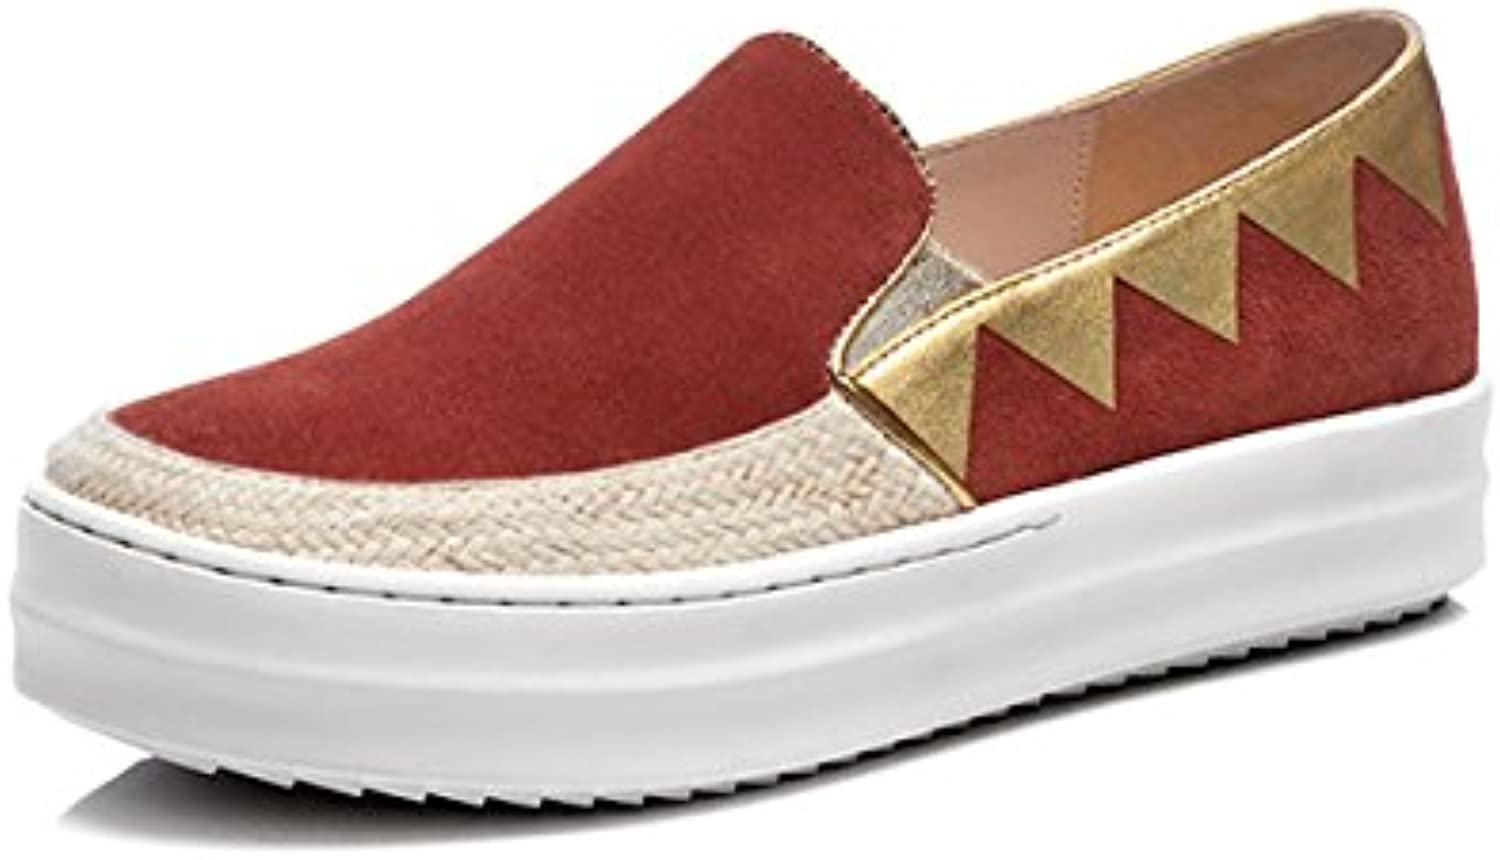 Yiye Damen Nubukleder Loafer Flach Mokassins Slip-On Plateau Schuhe Trainer Twill